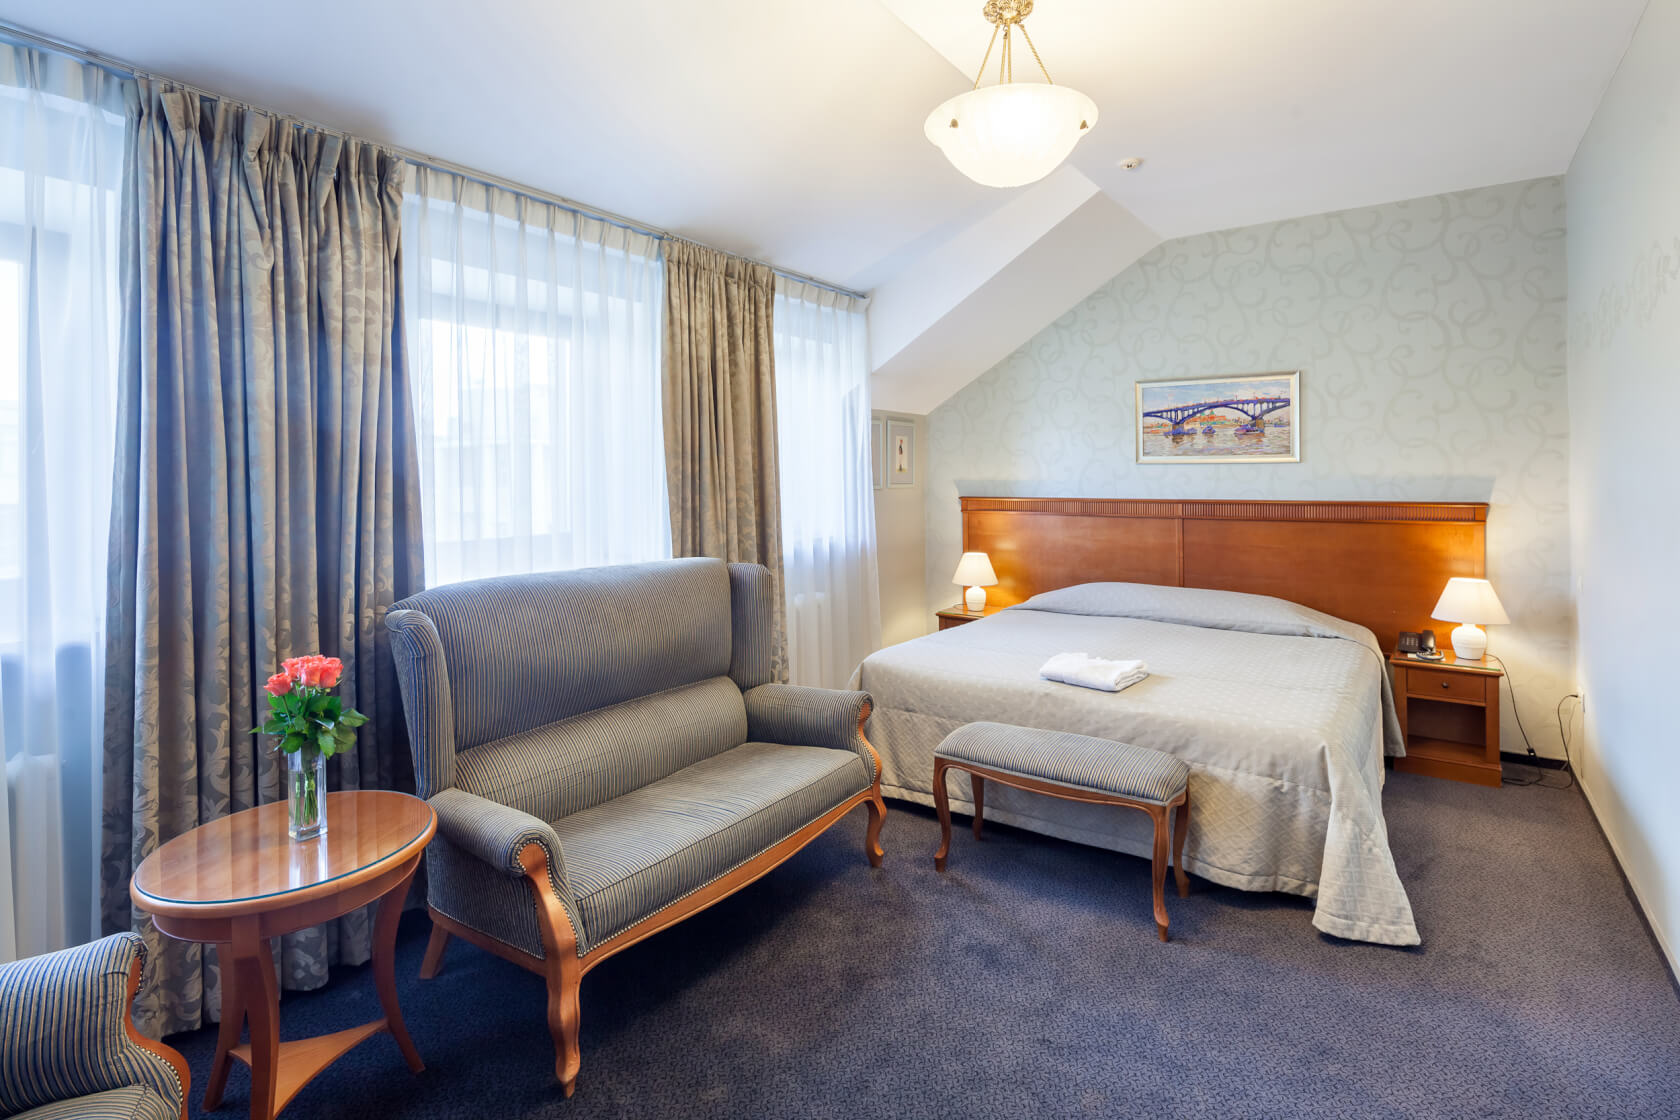 A 20% discount if booking 3 nights